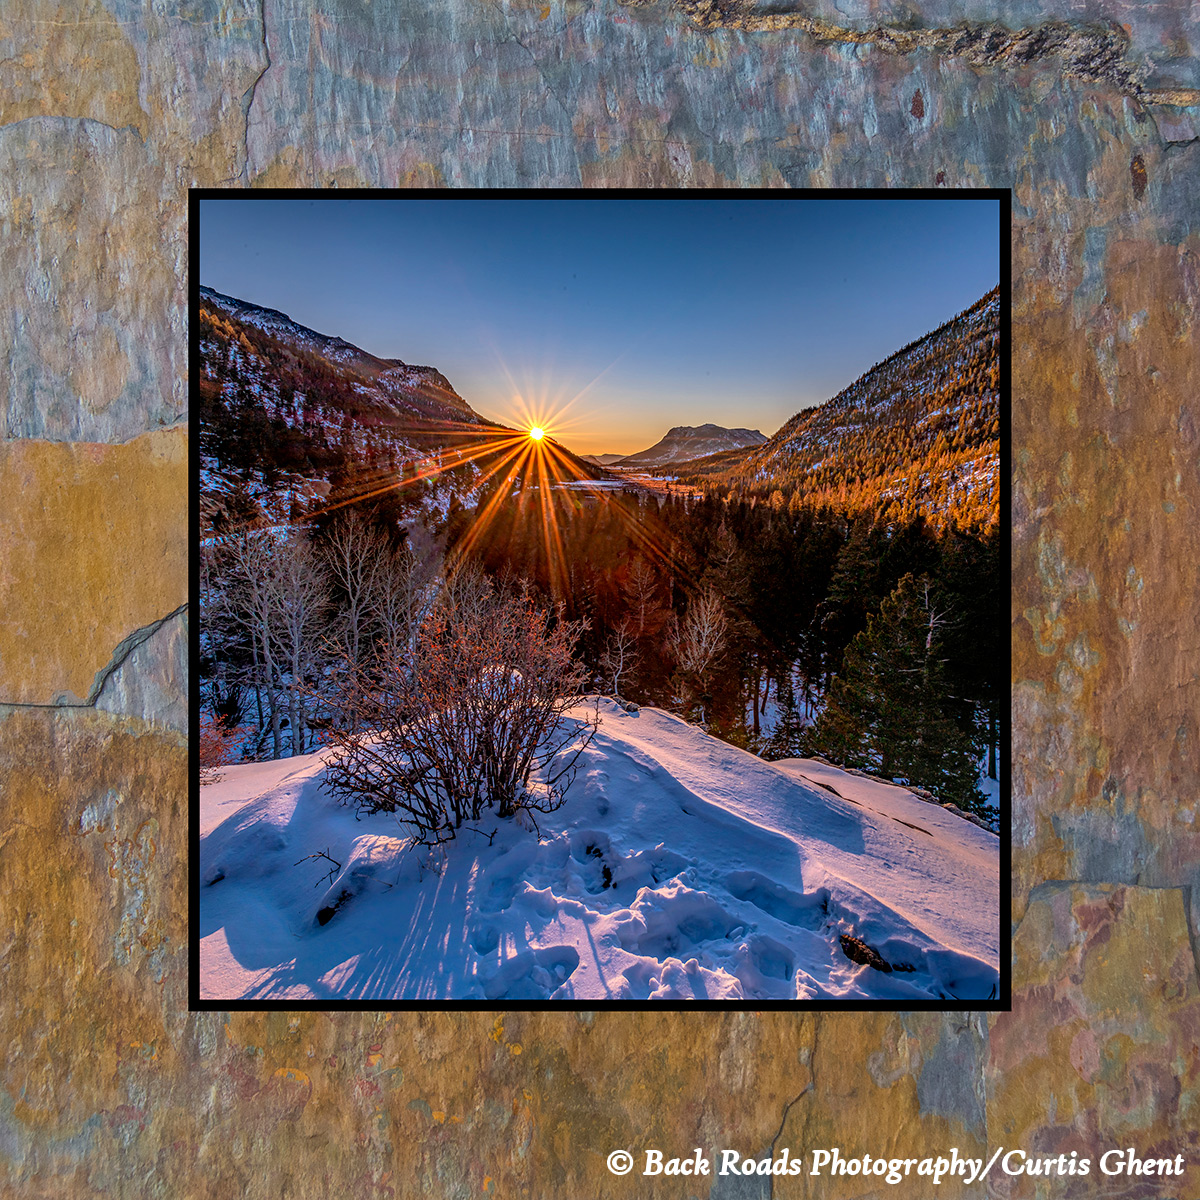 Images are laminated on natural slate with a fade and scratch resistant coating. Natural slate varies in color and texture making...